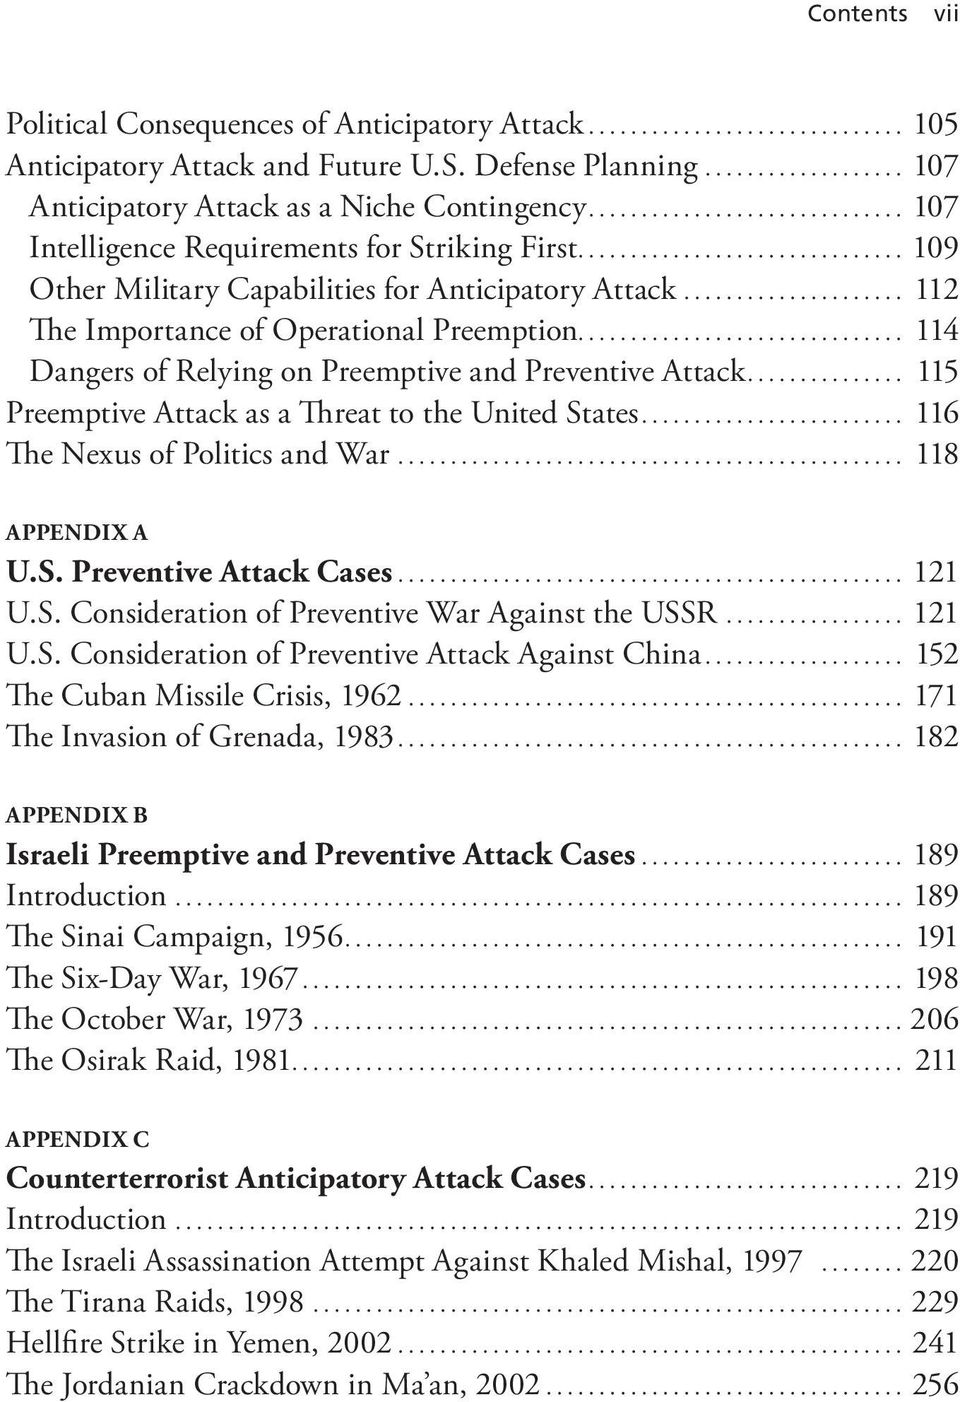 .. 114 Dangers of Relying on Preemptive and Preventive Attack... 115 Preemptive Attack as a Threat to the United States... 116 The Nexus of Politics and War... 118 APPENDIX A U.S. Preventive Attack Cases.